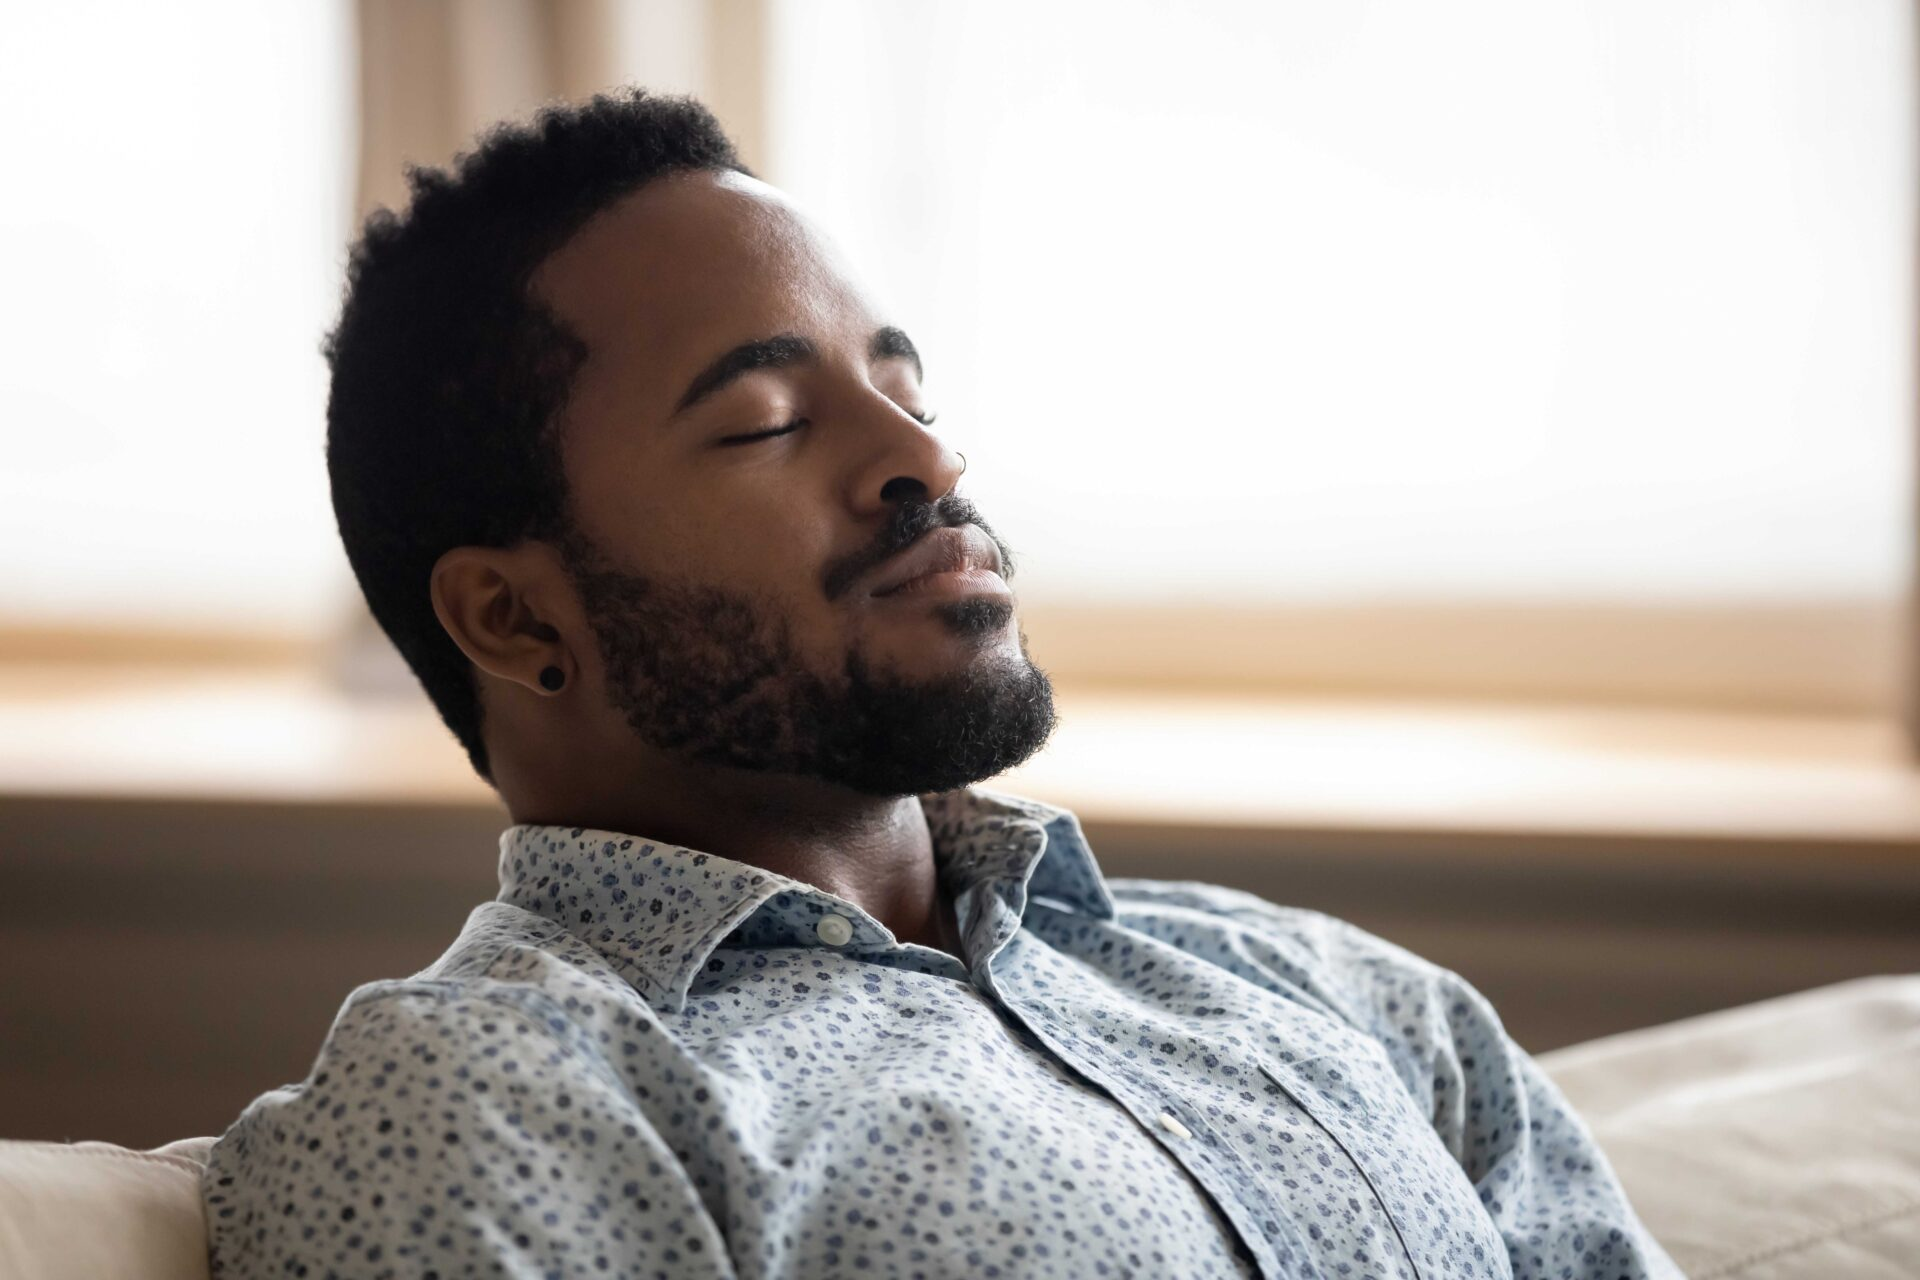 Tranquil young man resting eyes closed breathing on couch